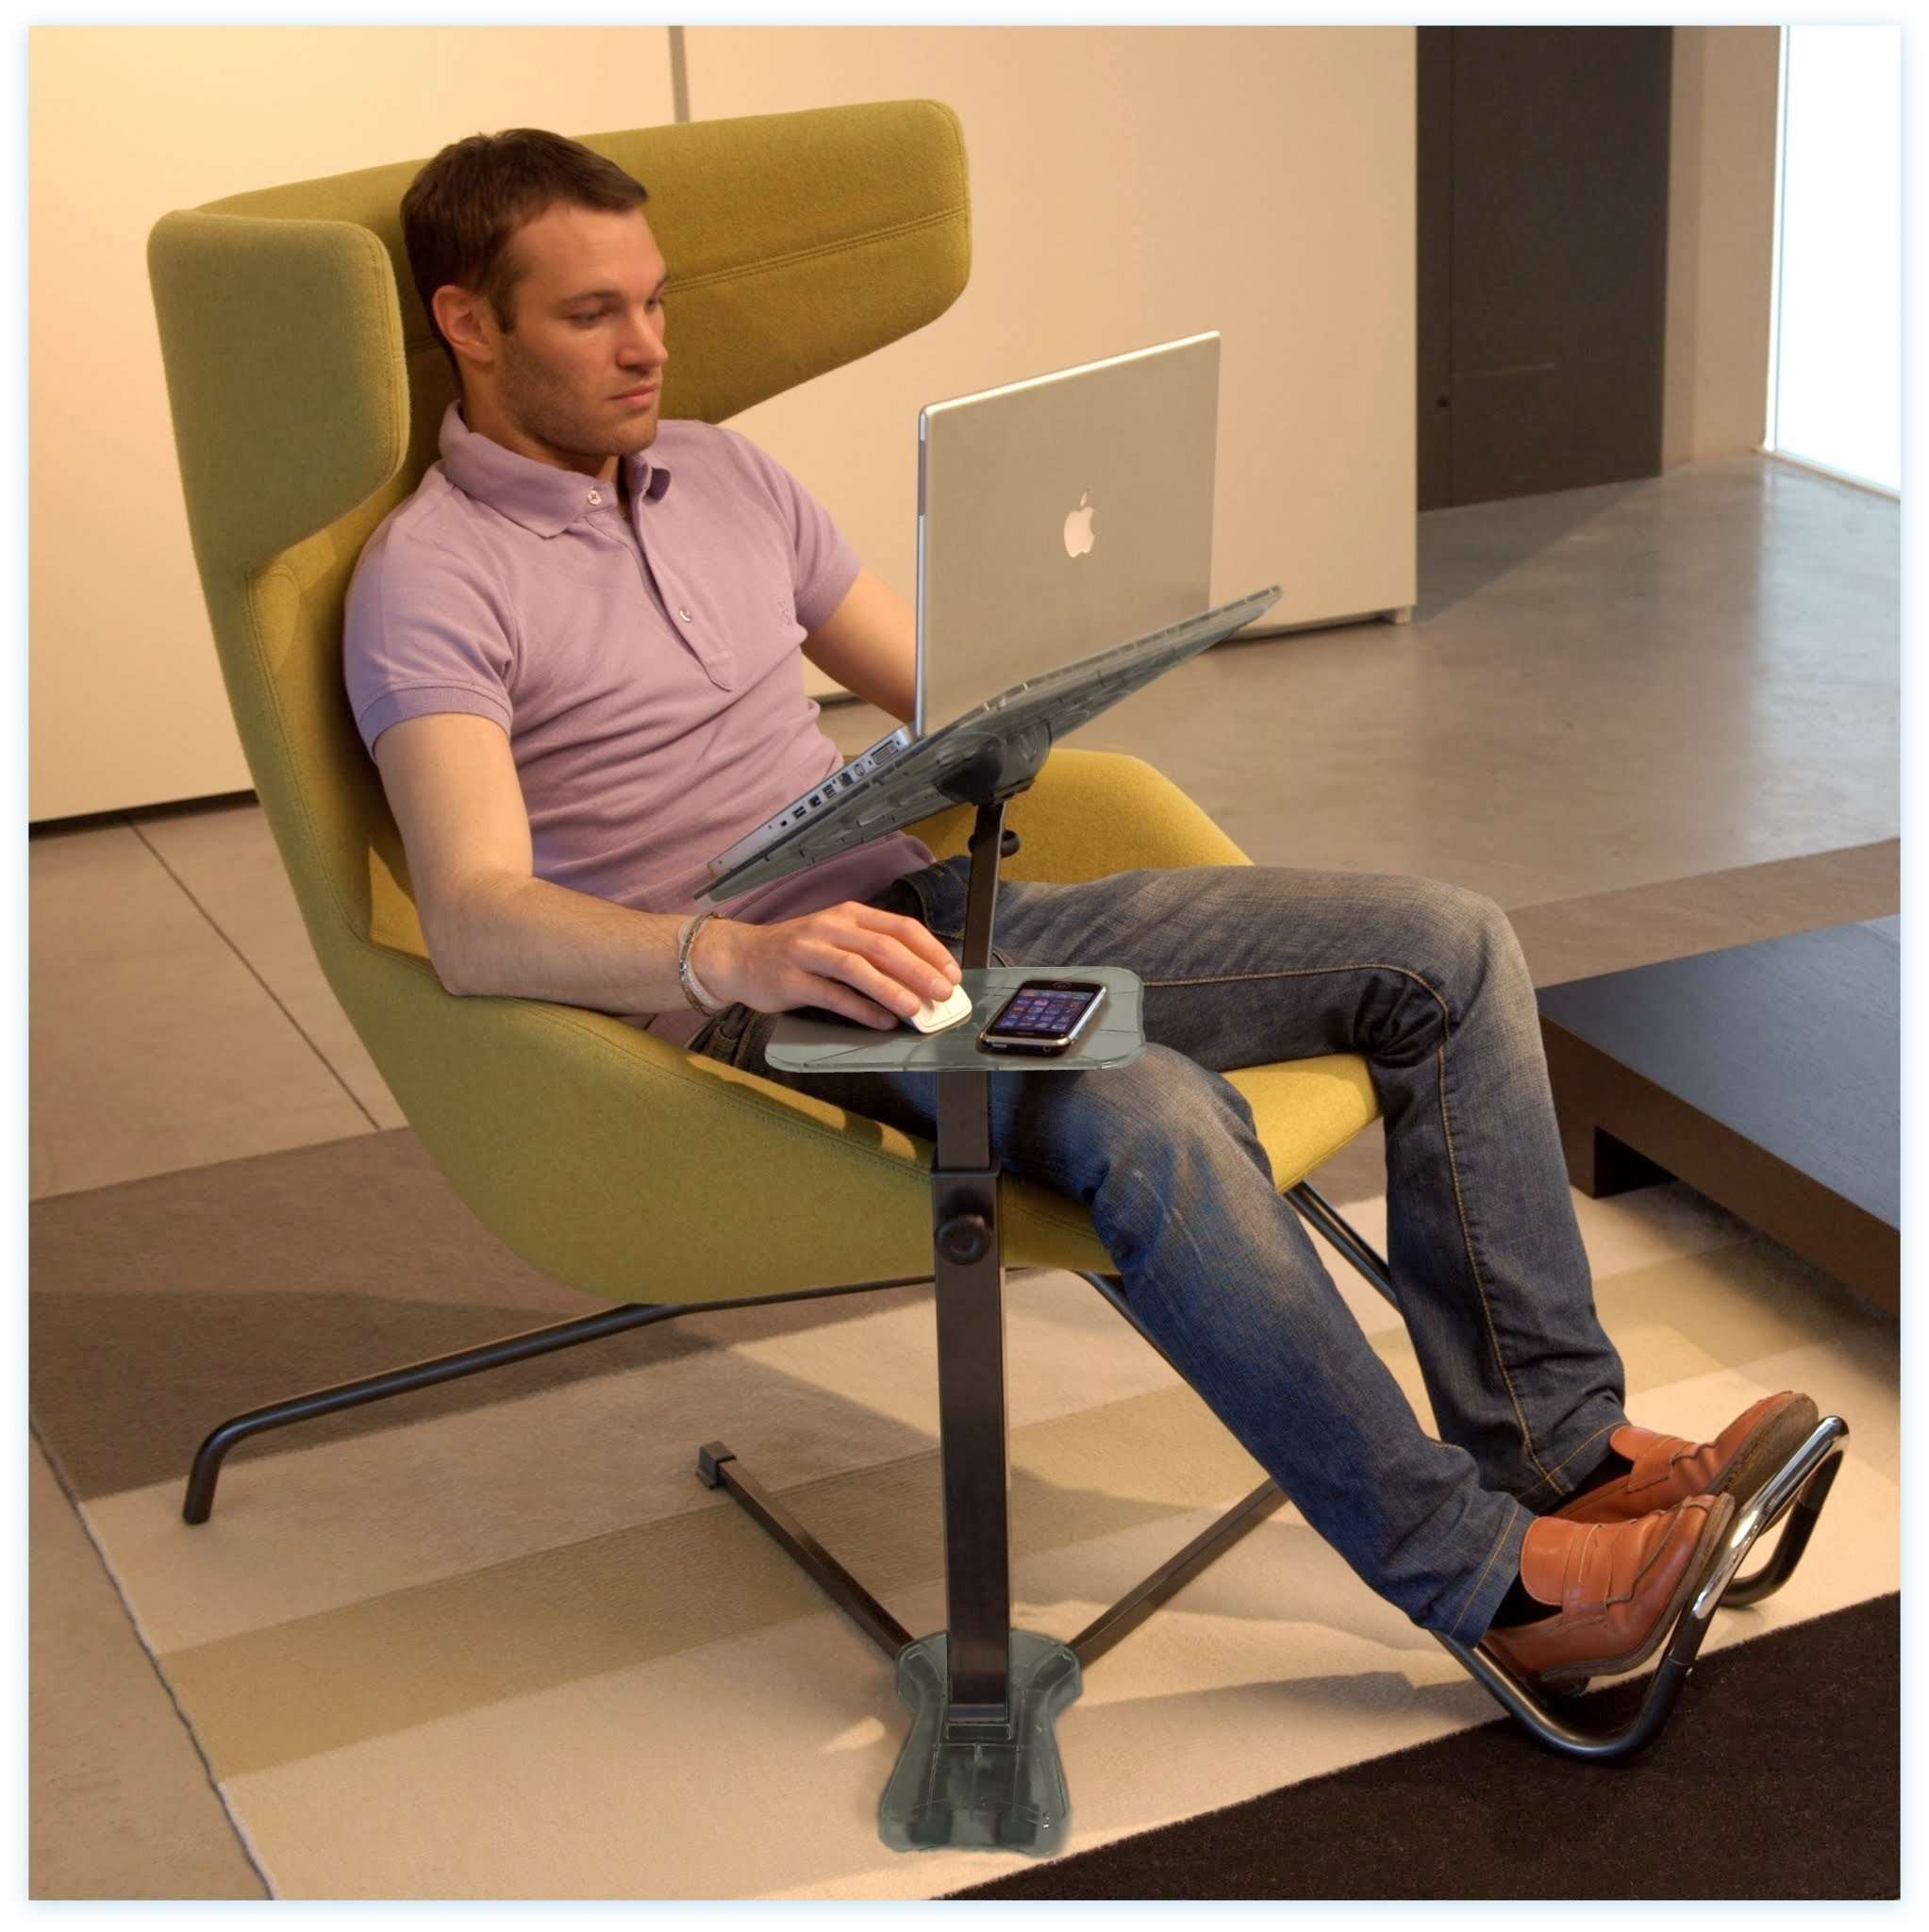 ... The Ergonomic Laptop Stand Fully Adjustable